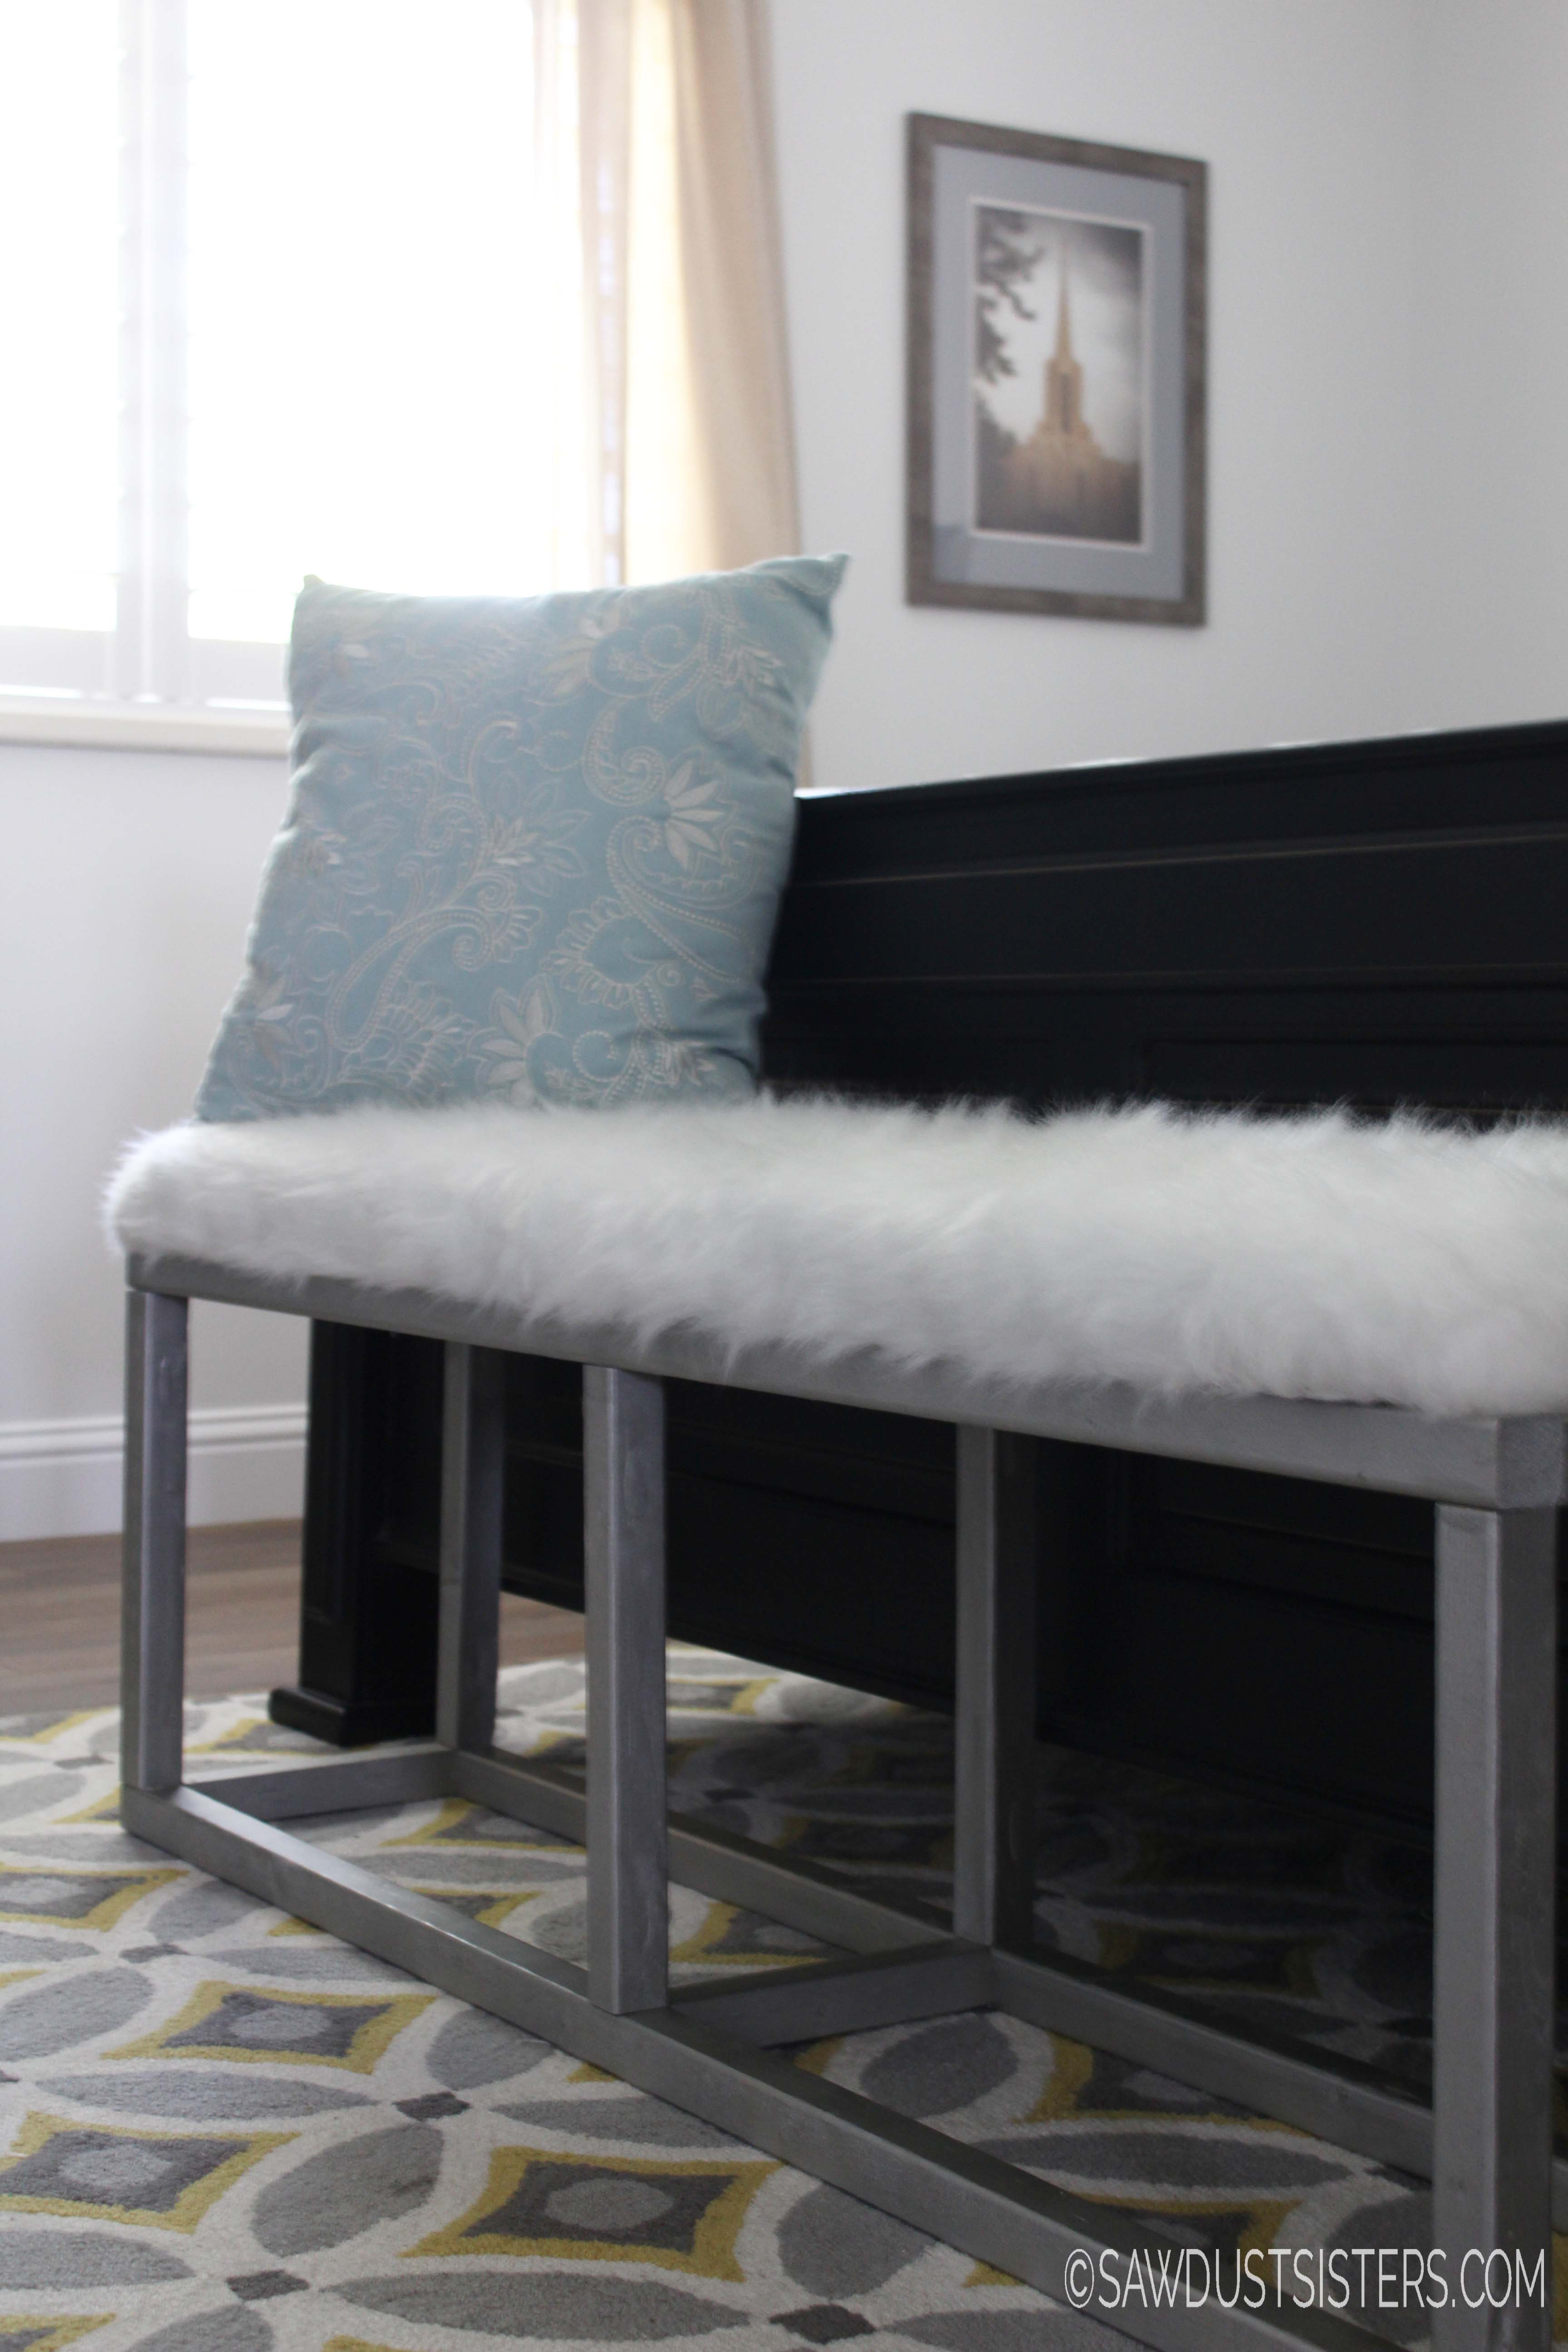 Diy Upholstered Bench With Faux Metal Frame Sawdust Sisters